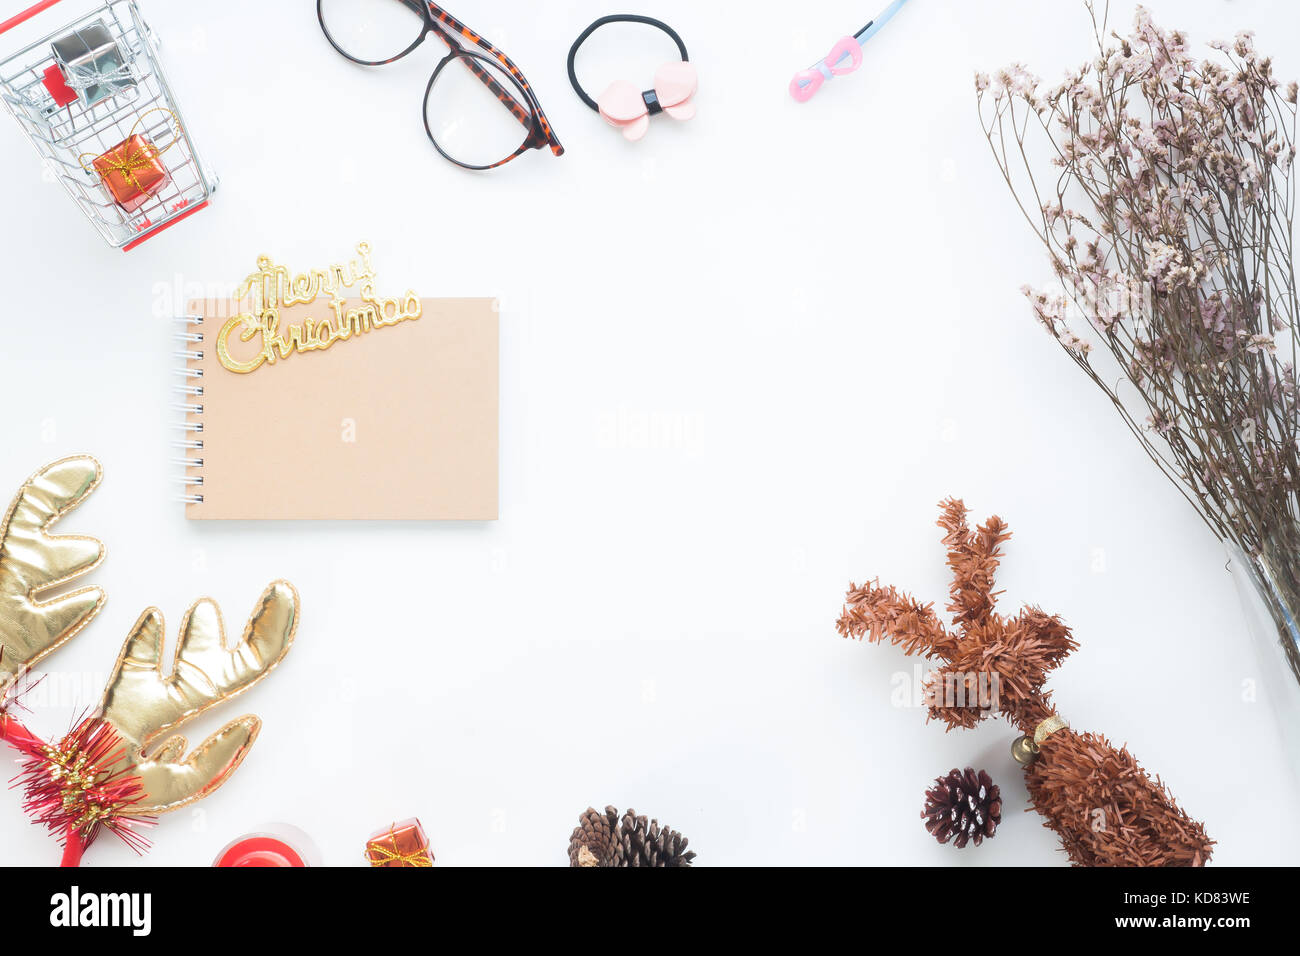 Creative flat lay of Christmas decorations and notebook on white background with copy space - Stock Image